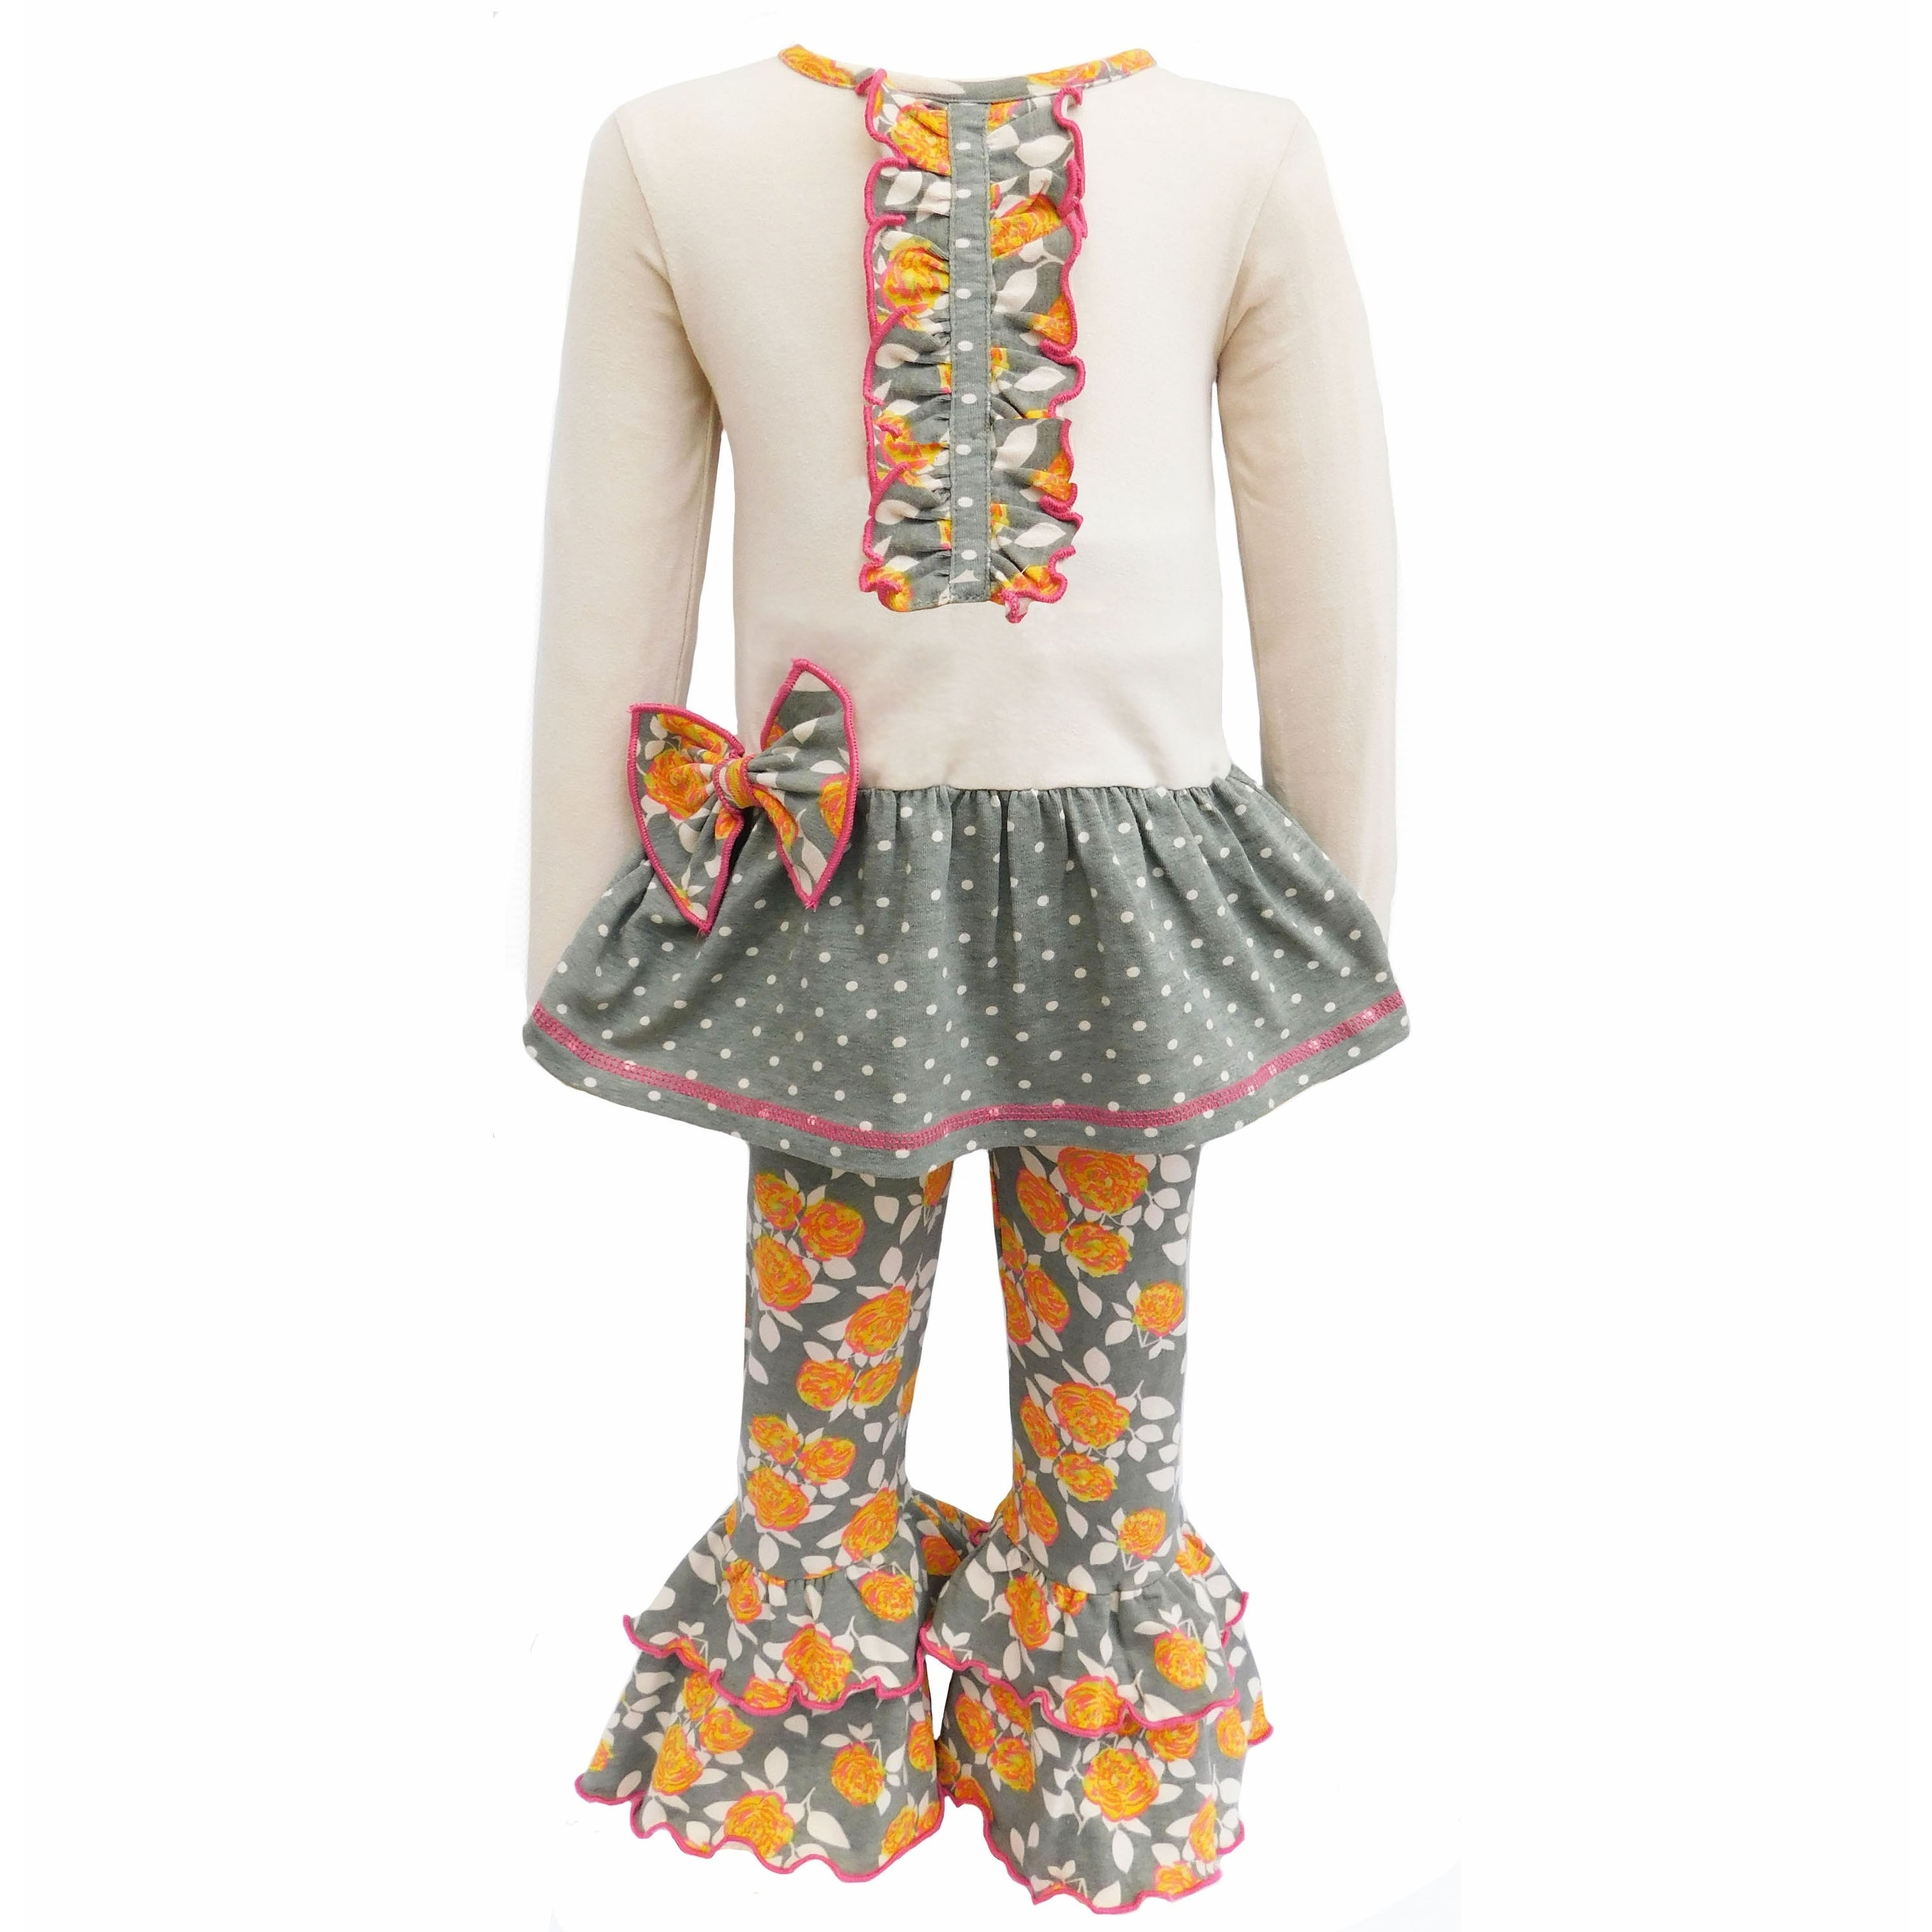 NEW Boutique Girls Yellow Floral Ruffle Tunic Dress Striped Leggings Outfit Set